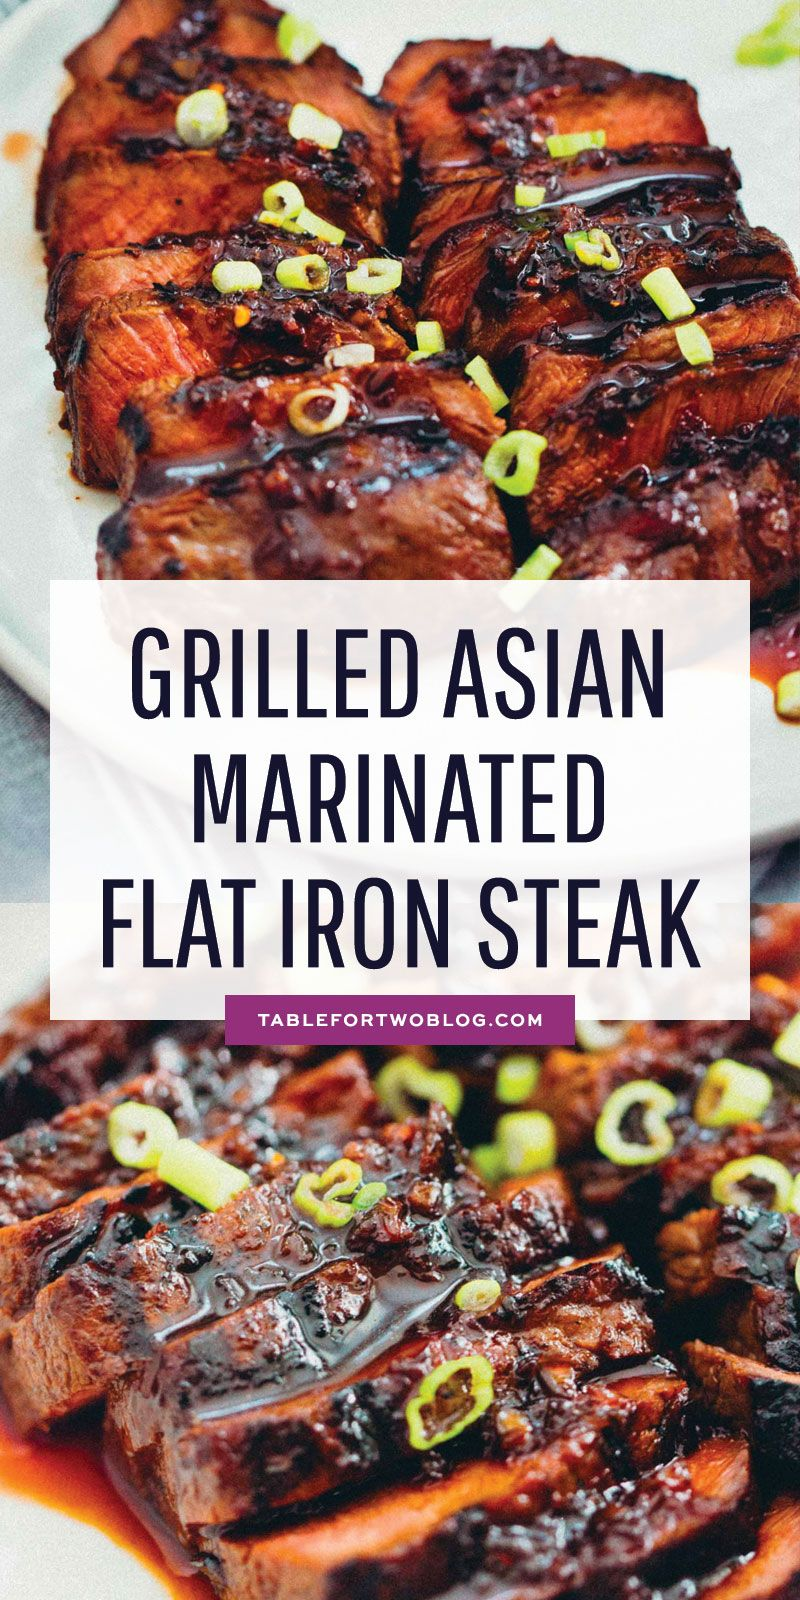 Grilled Asian Marinated Flat Iron Steak - Grilled Flat Iron Steak Recipe